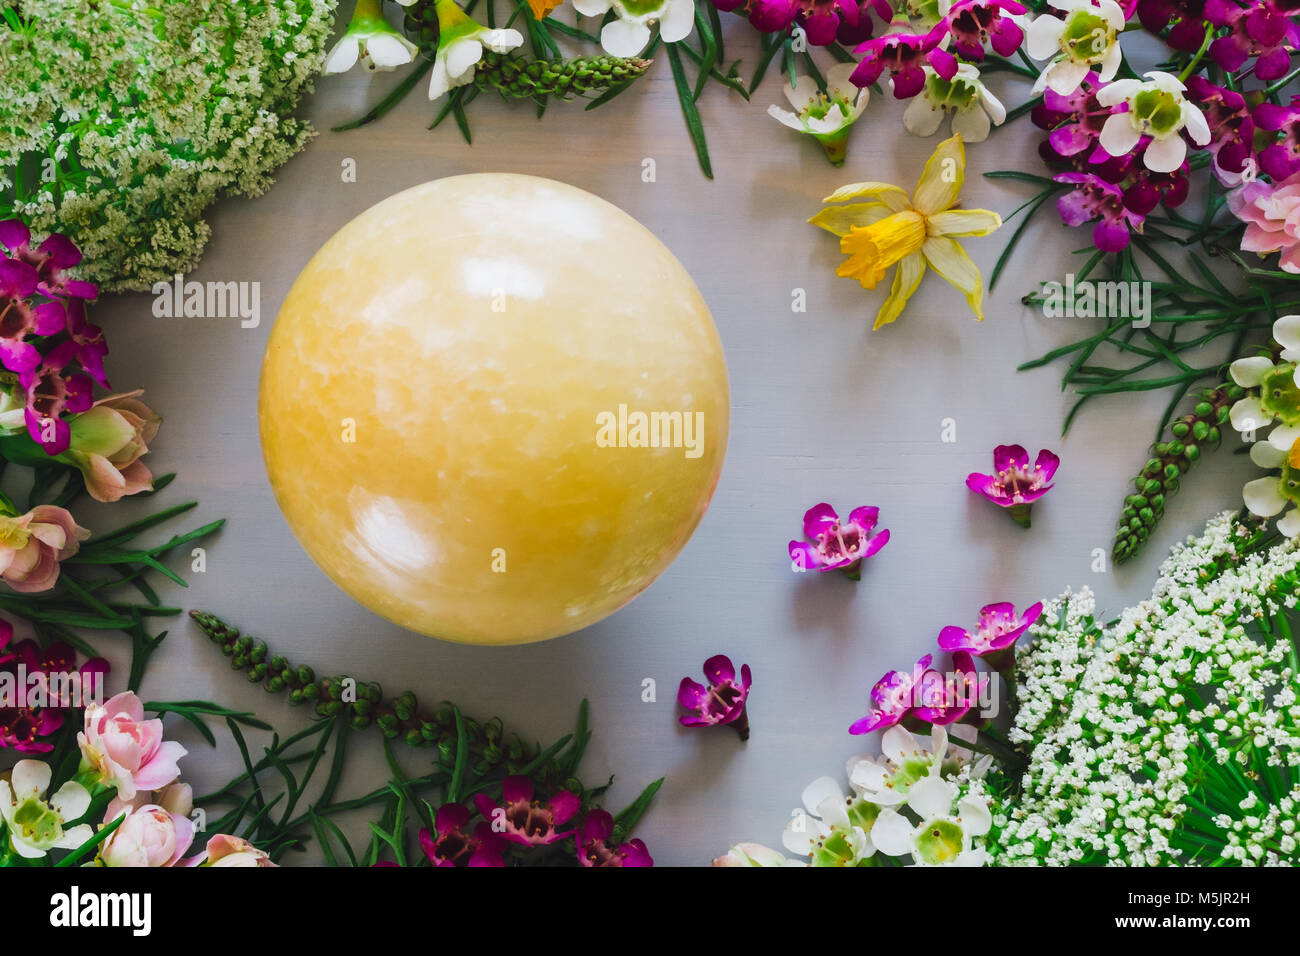 Yellow Aventurine Sphere with Mixed Spring Flowers - Stock Image